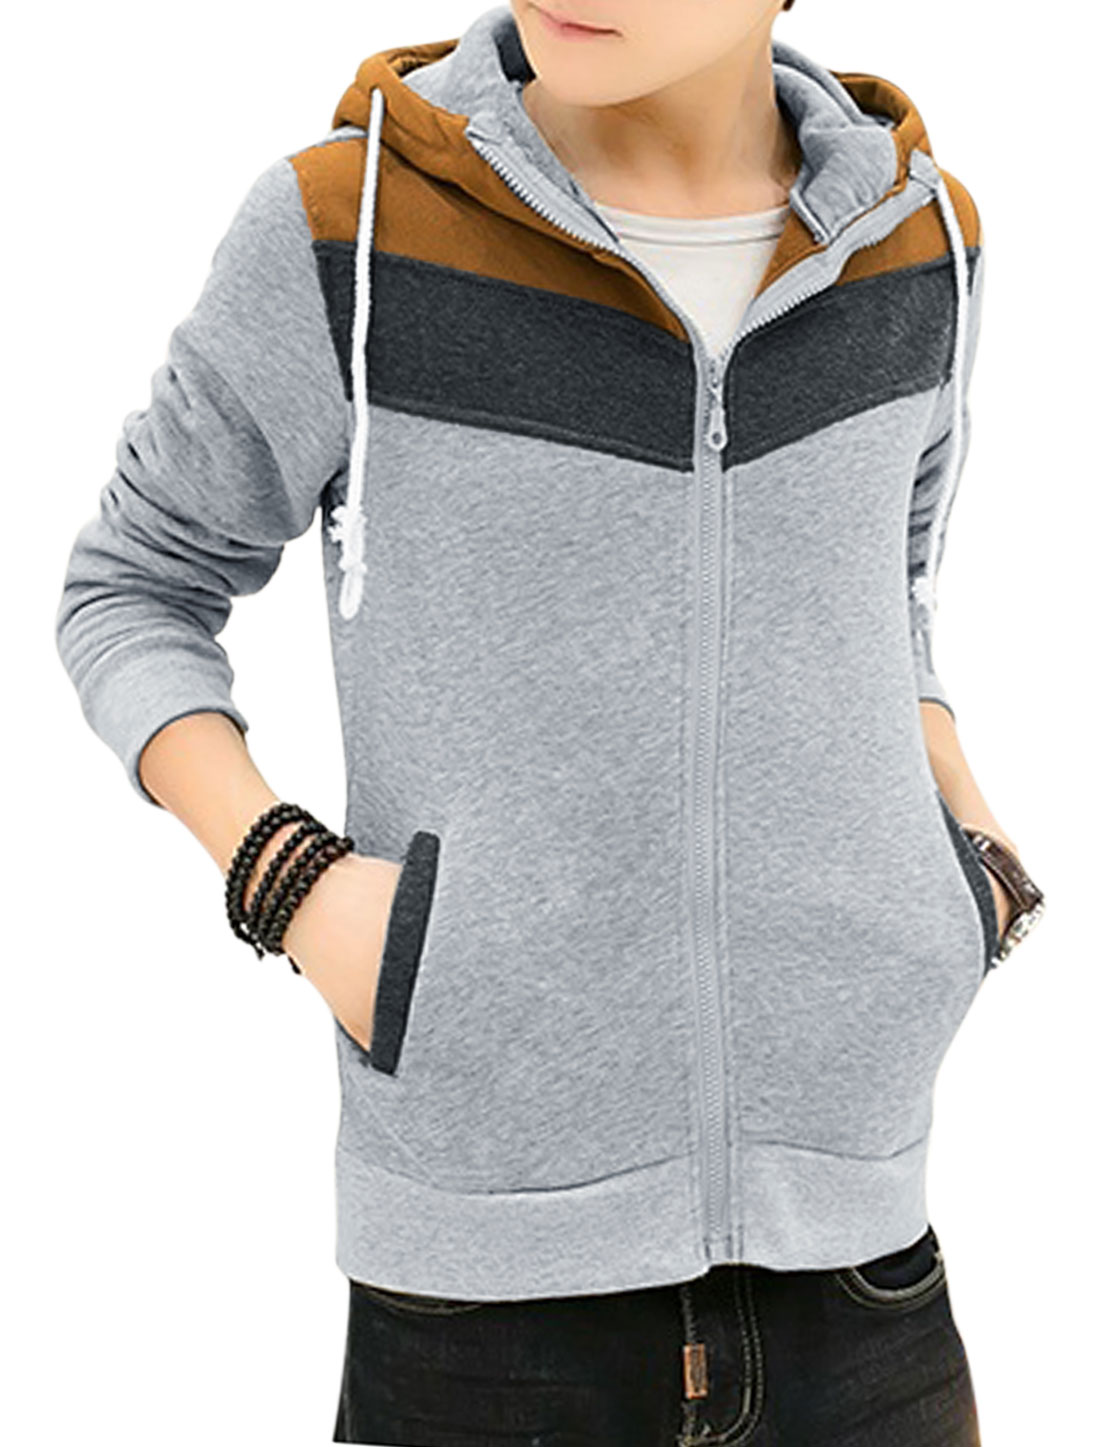 Men Zip Closure Contrast Color Front Pockets Casual Hoodie Jacket Light Gray M